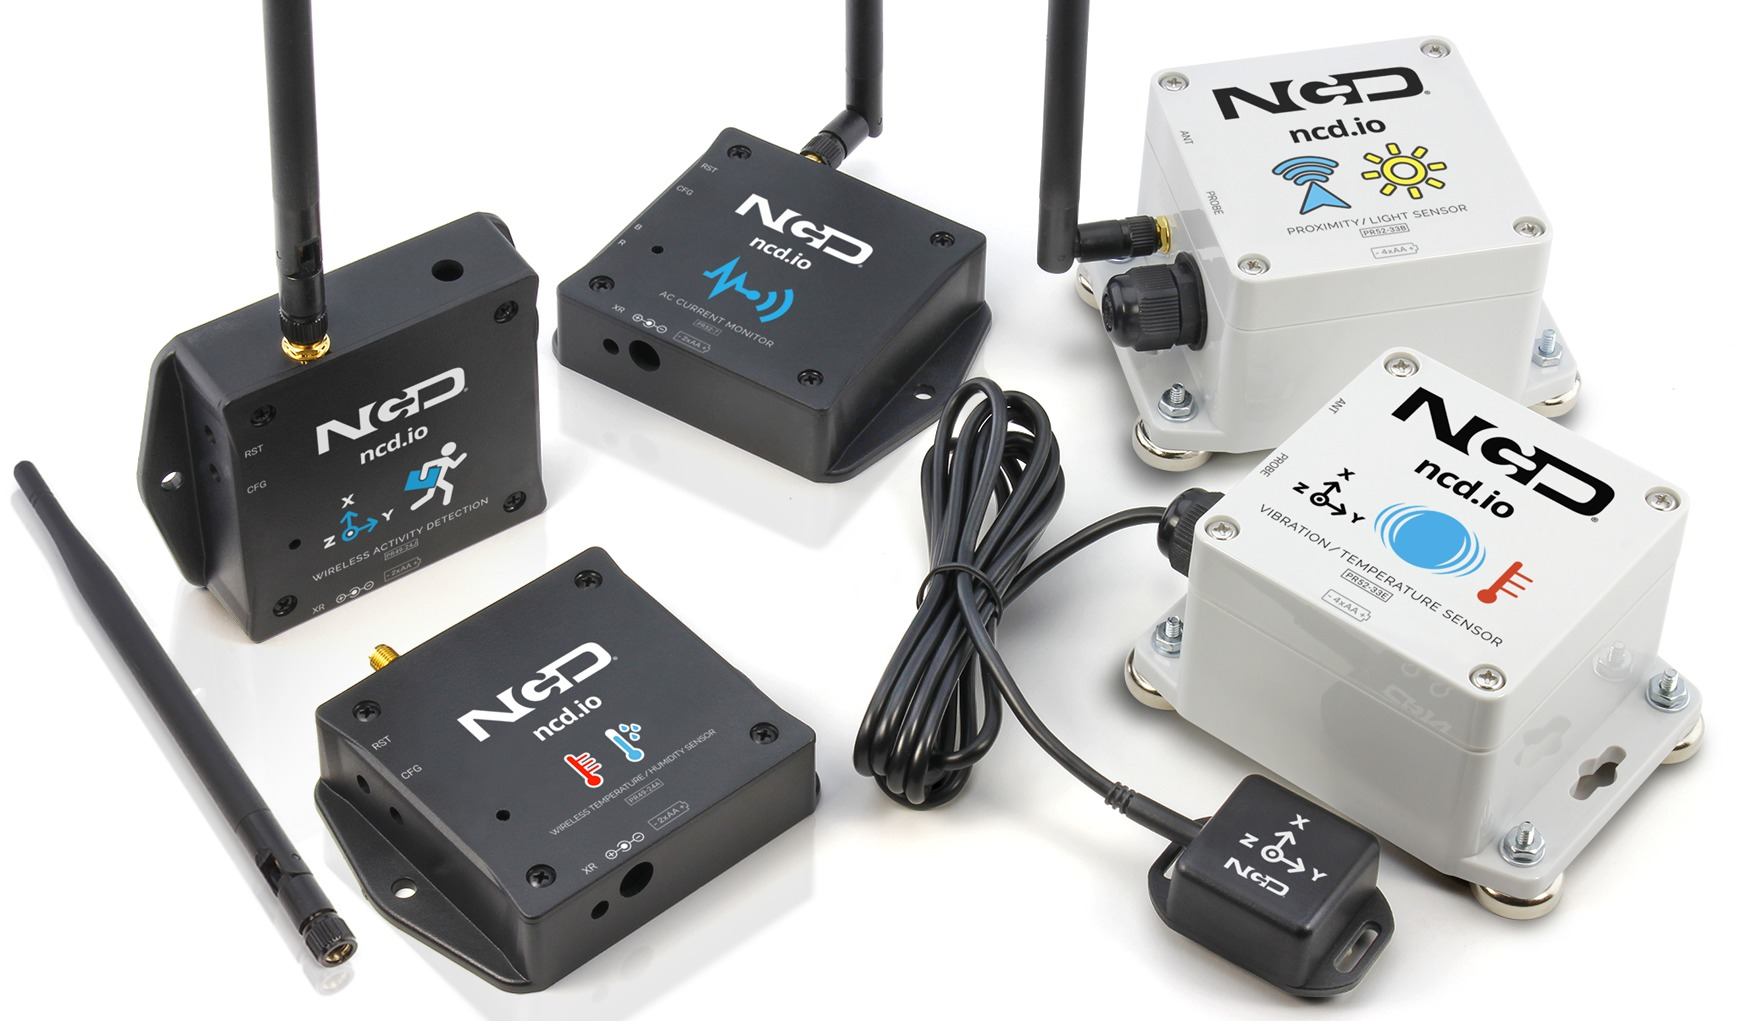 Getting Started With ncd.io IoT Wireless Sensors